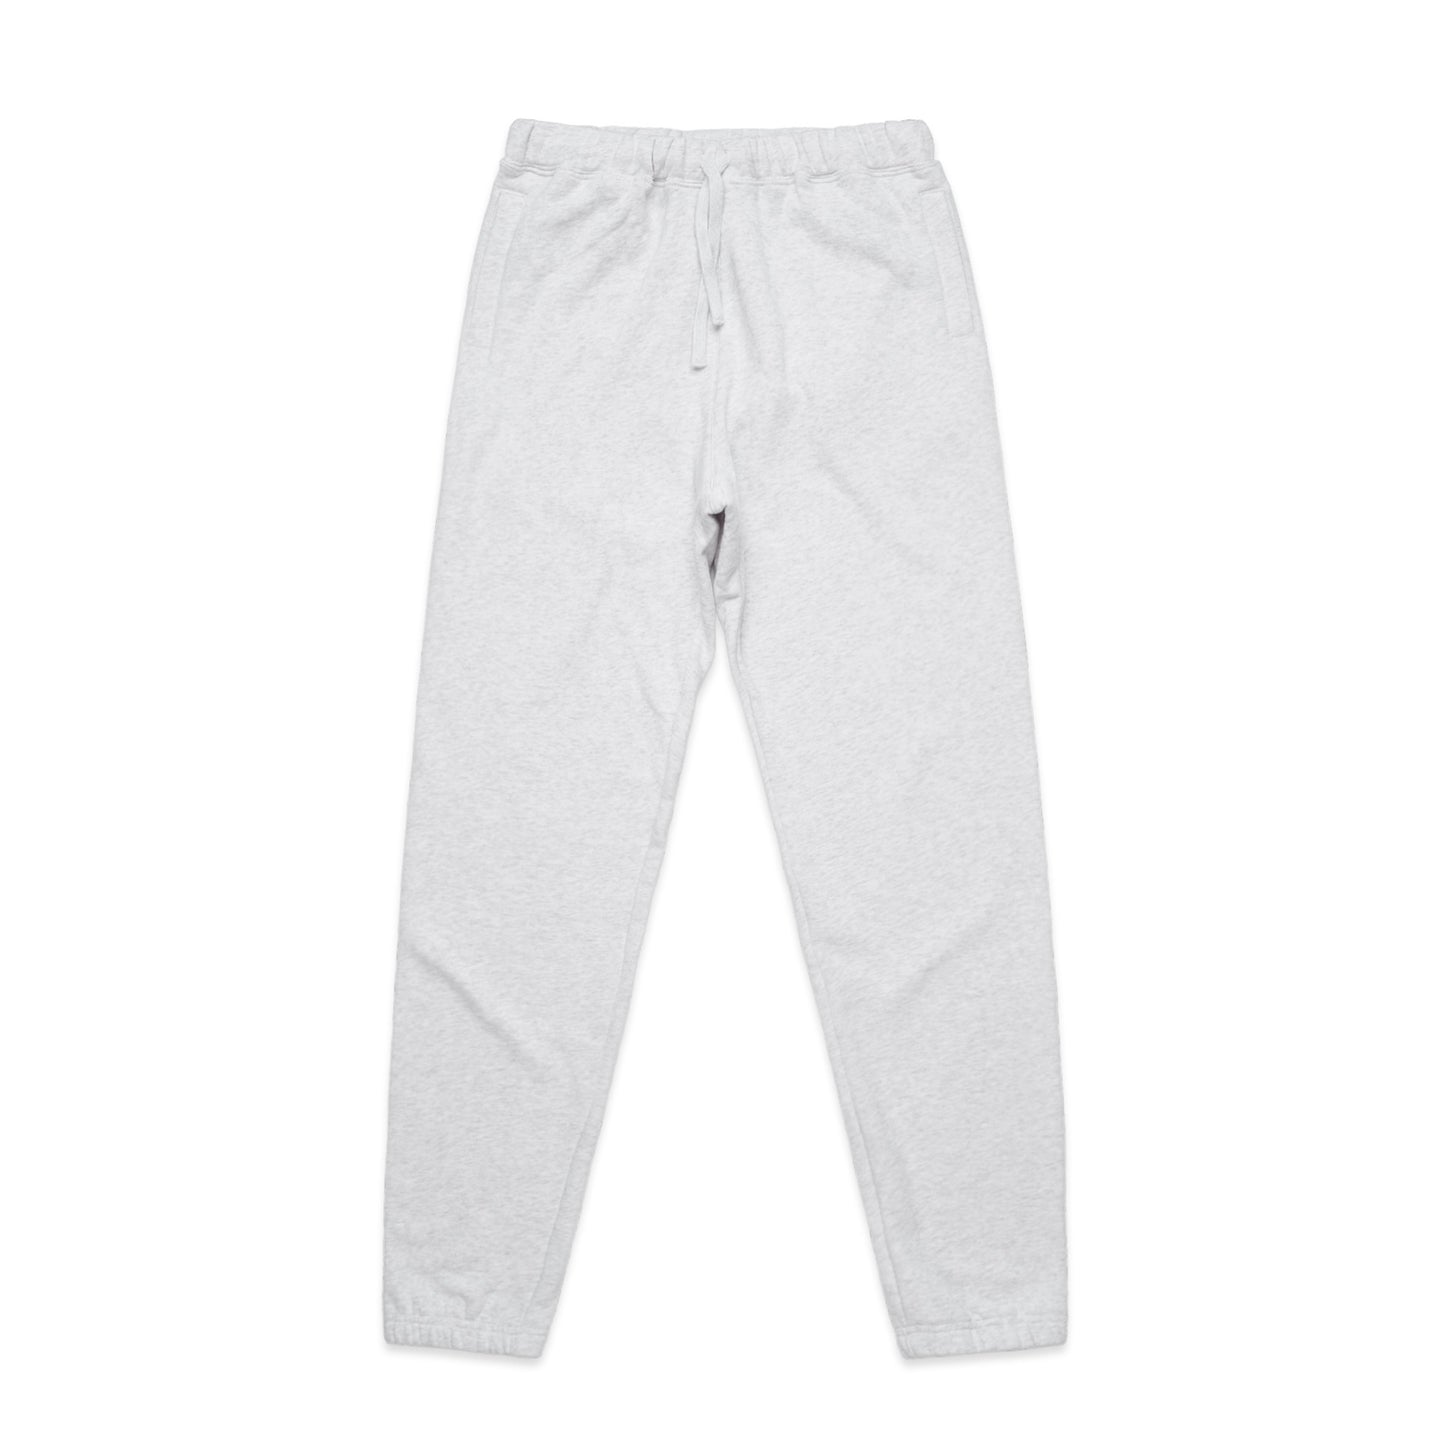 The Track Pant - Light Marl